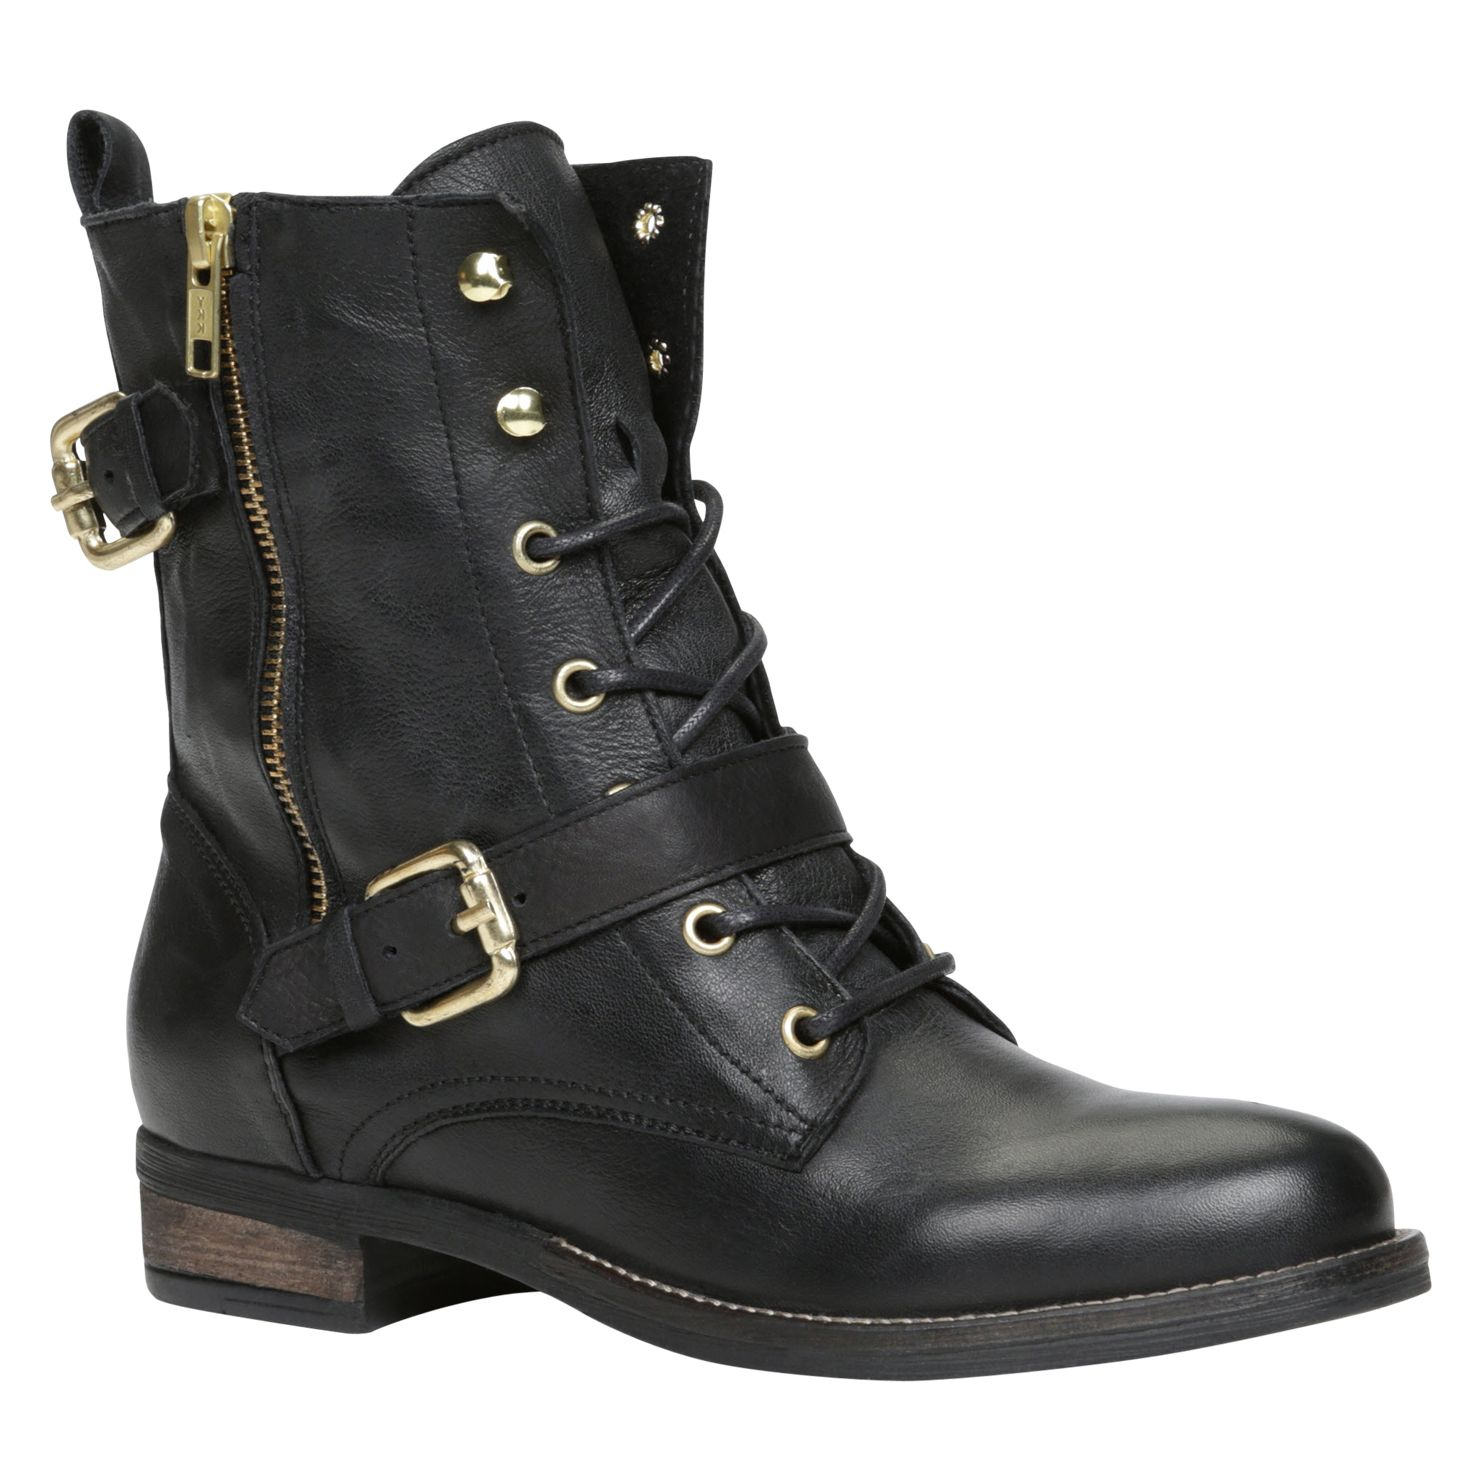 Cypria lace up ankle boots